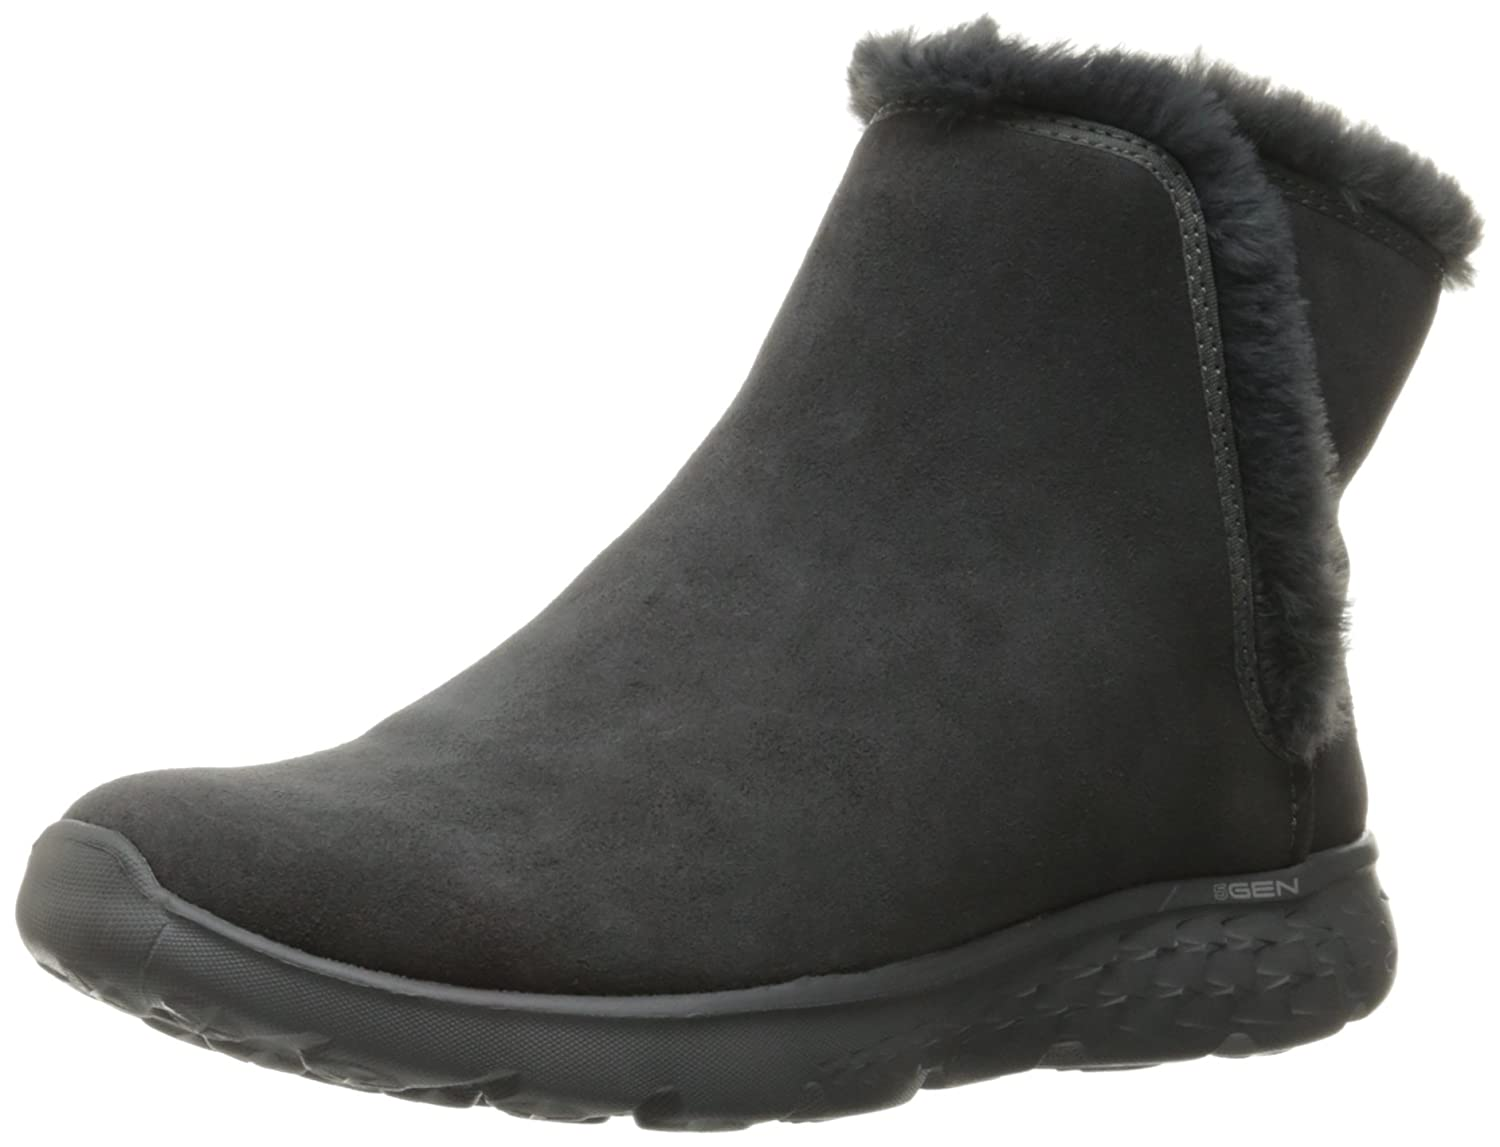 Skechers Damen Stiefel gefuuml;ttert On-the-Go 400 Blaze Grau  36 EU